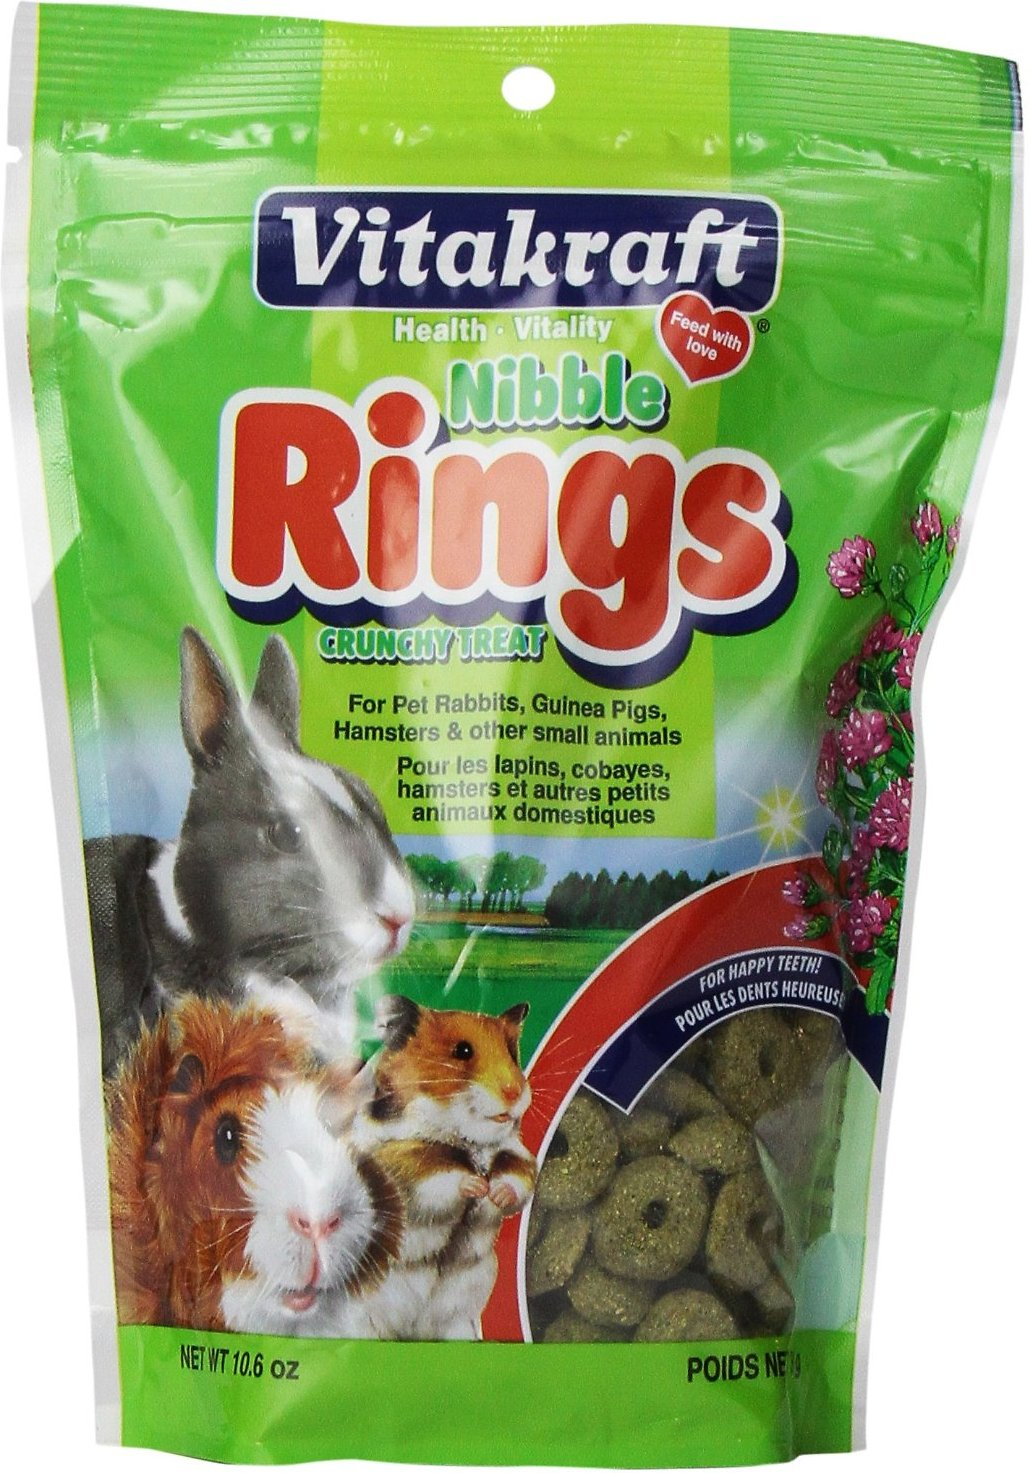 Vitakraft Nibble Rings Crunchy Small Animal Treats, 10.6-oz bag